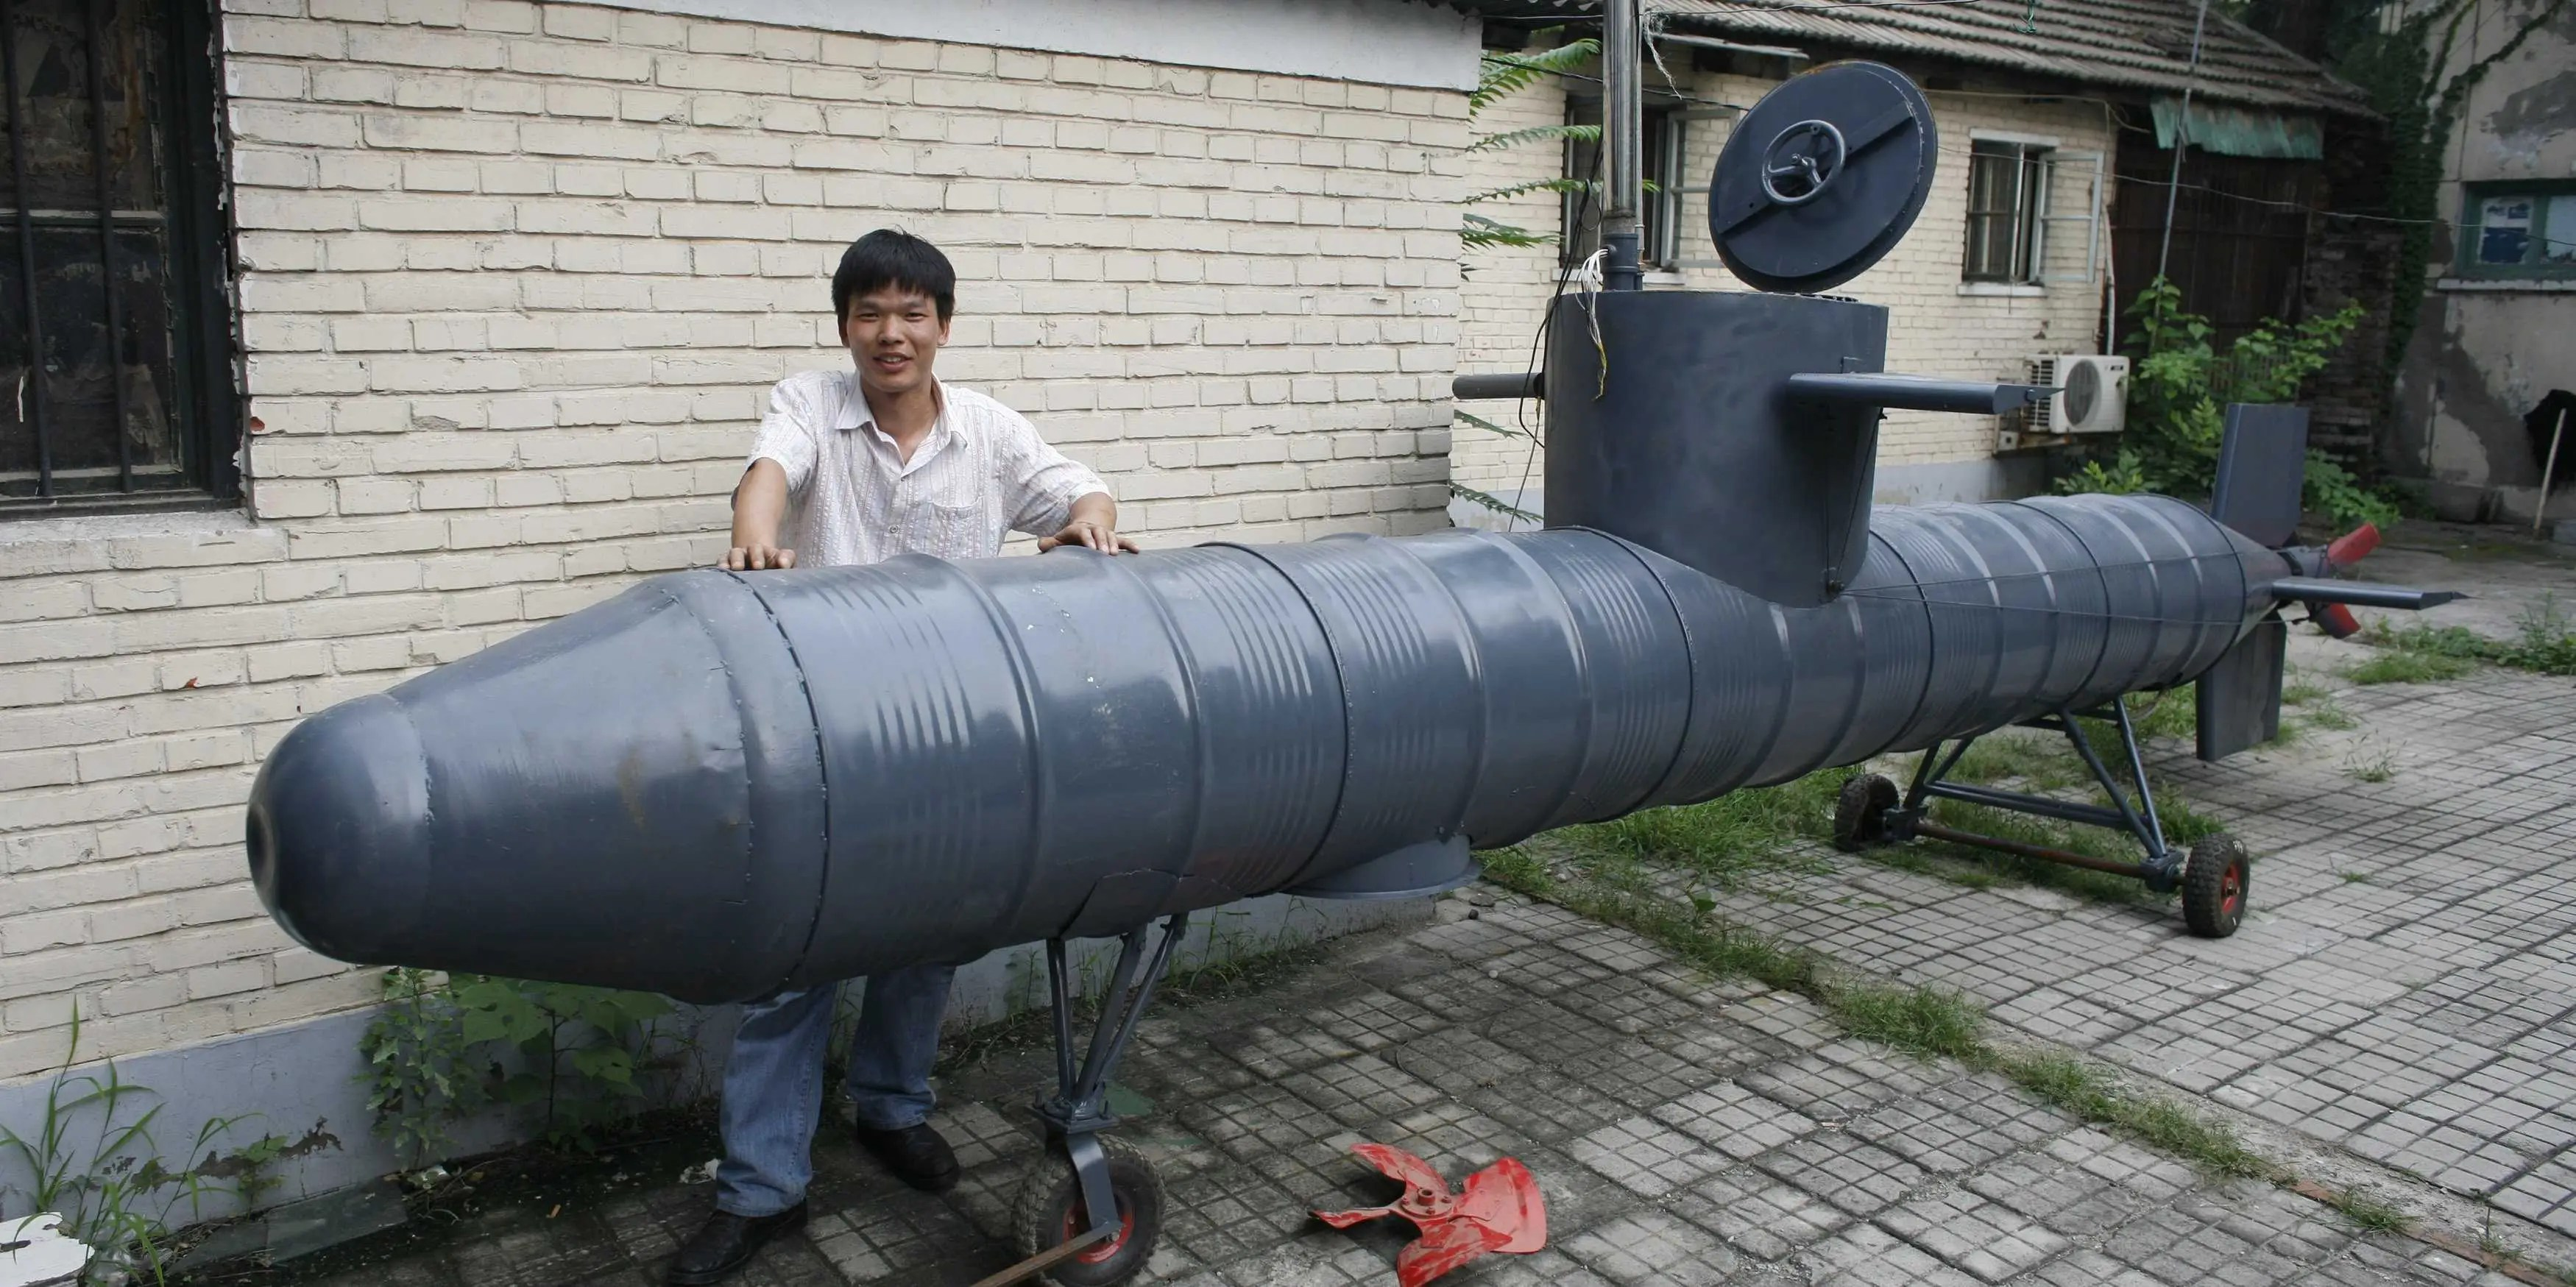 Cool Chinese Homemade Inventions